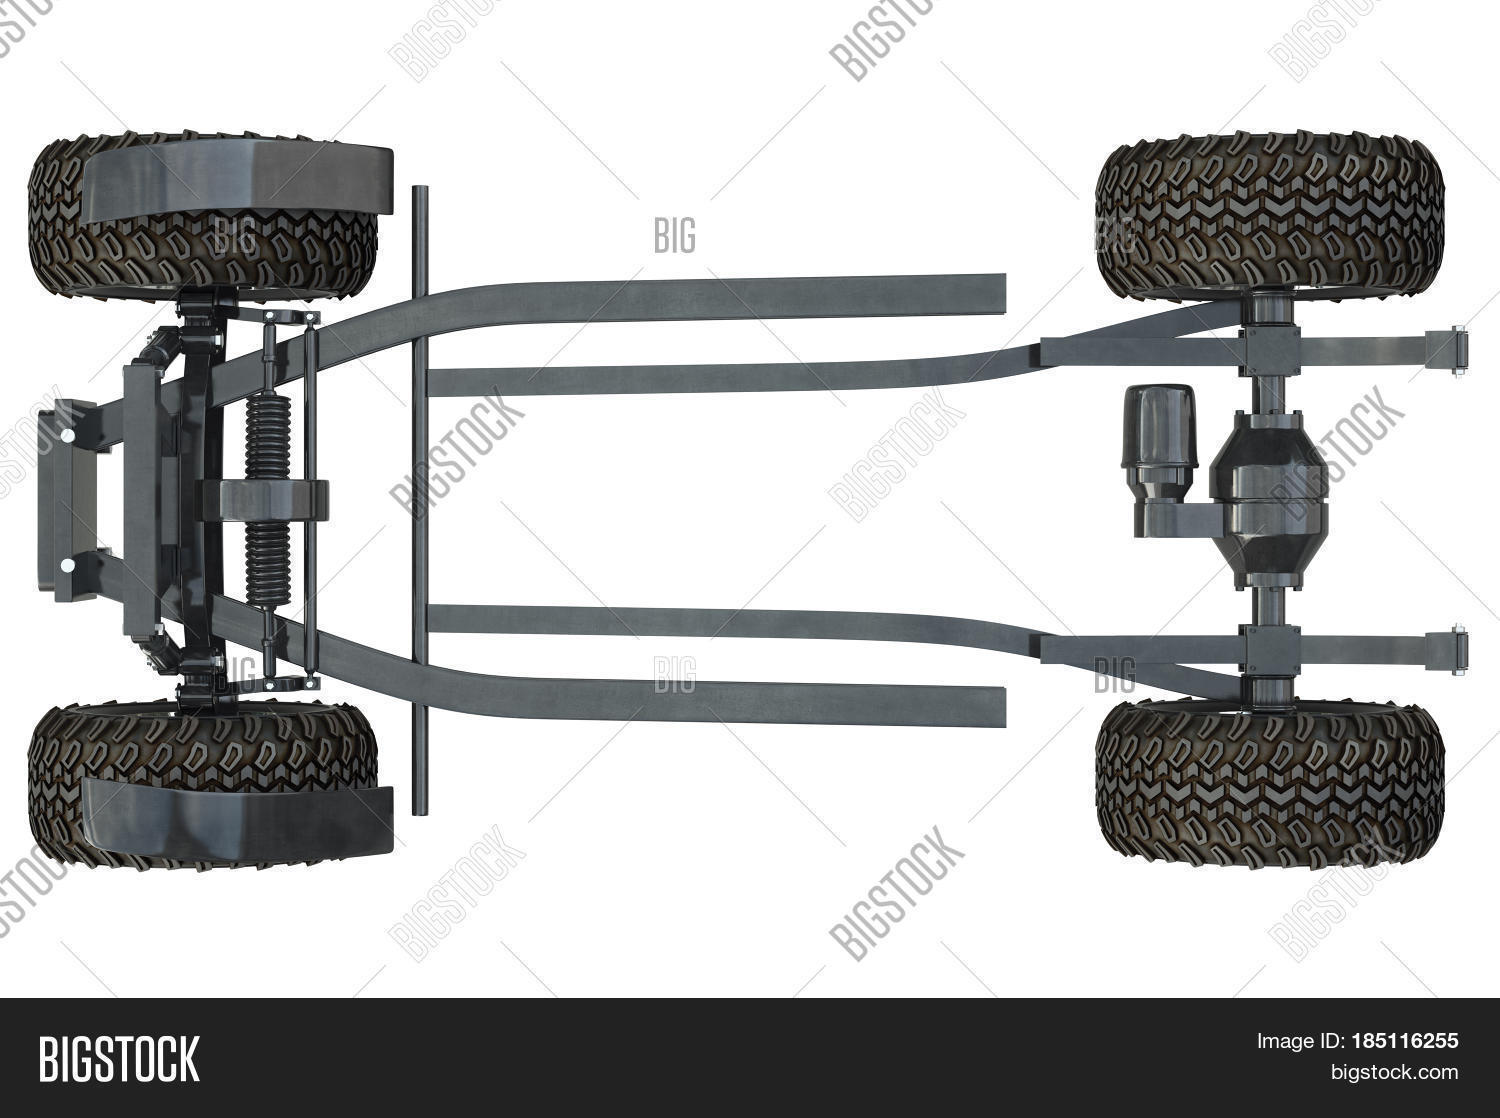 Golf Car Chassis Wheels Top View Image Amp Photo